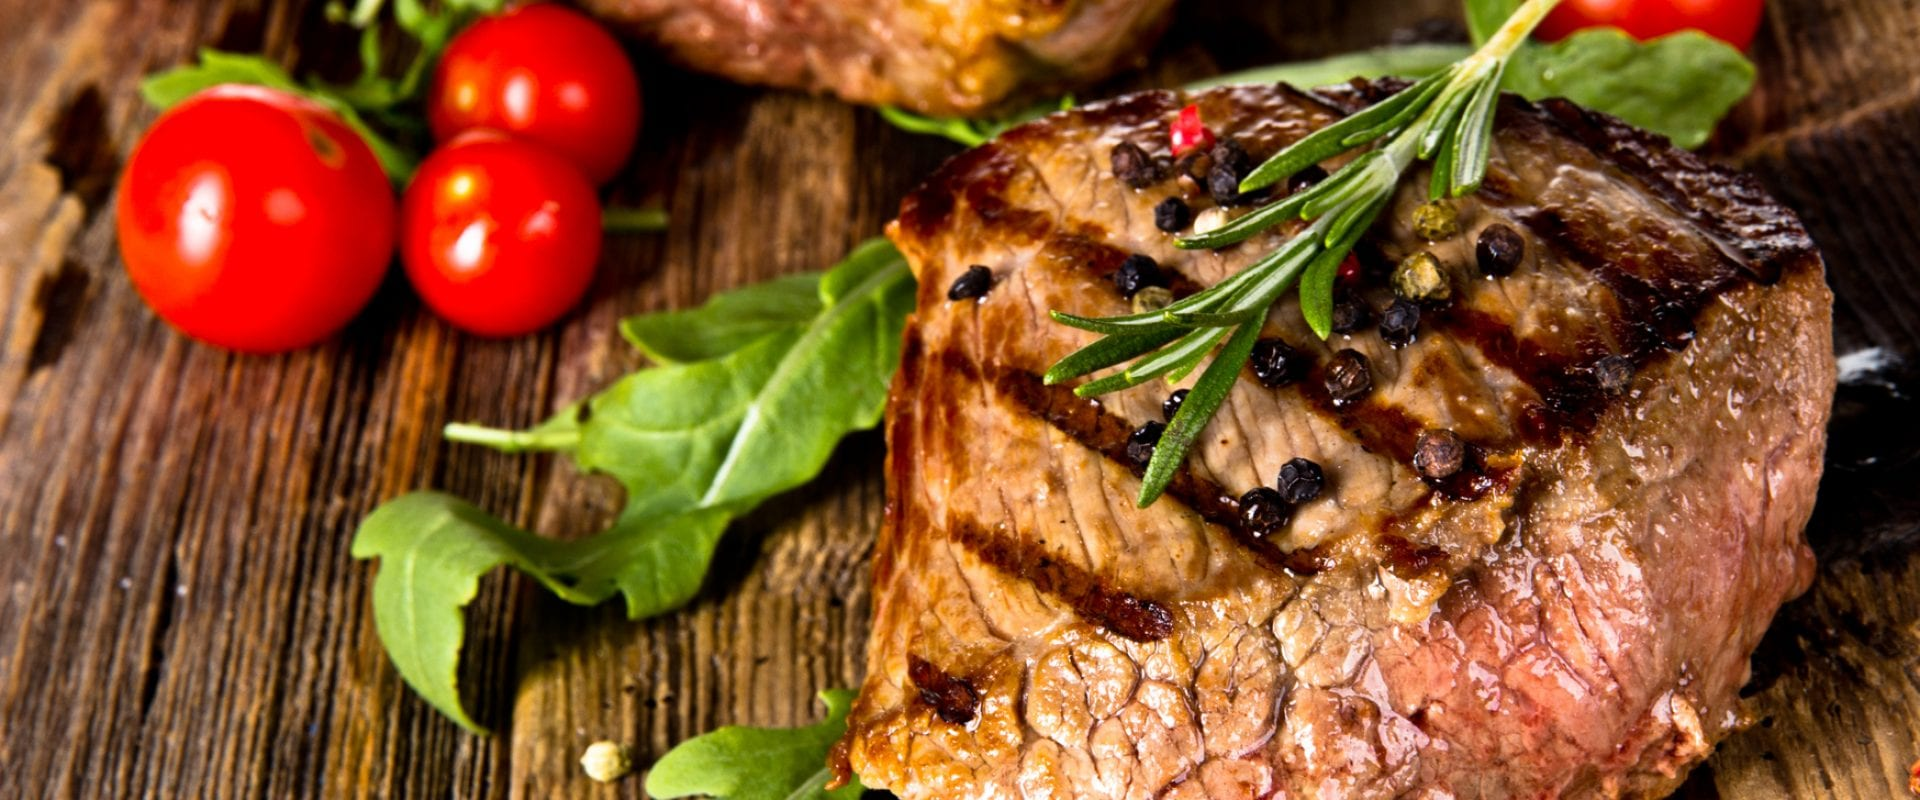 Barbecue lovers: time to meat up!